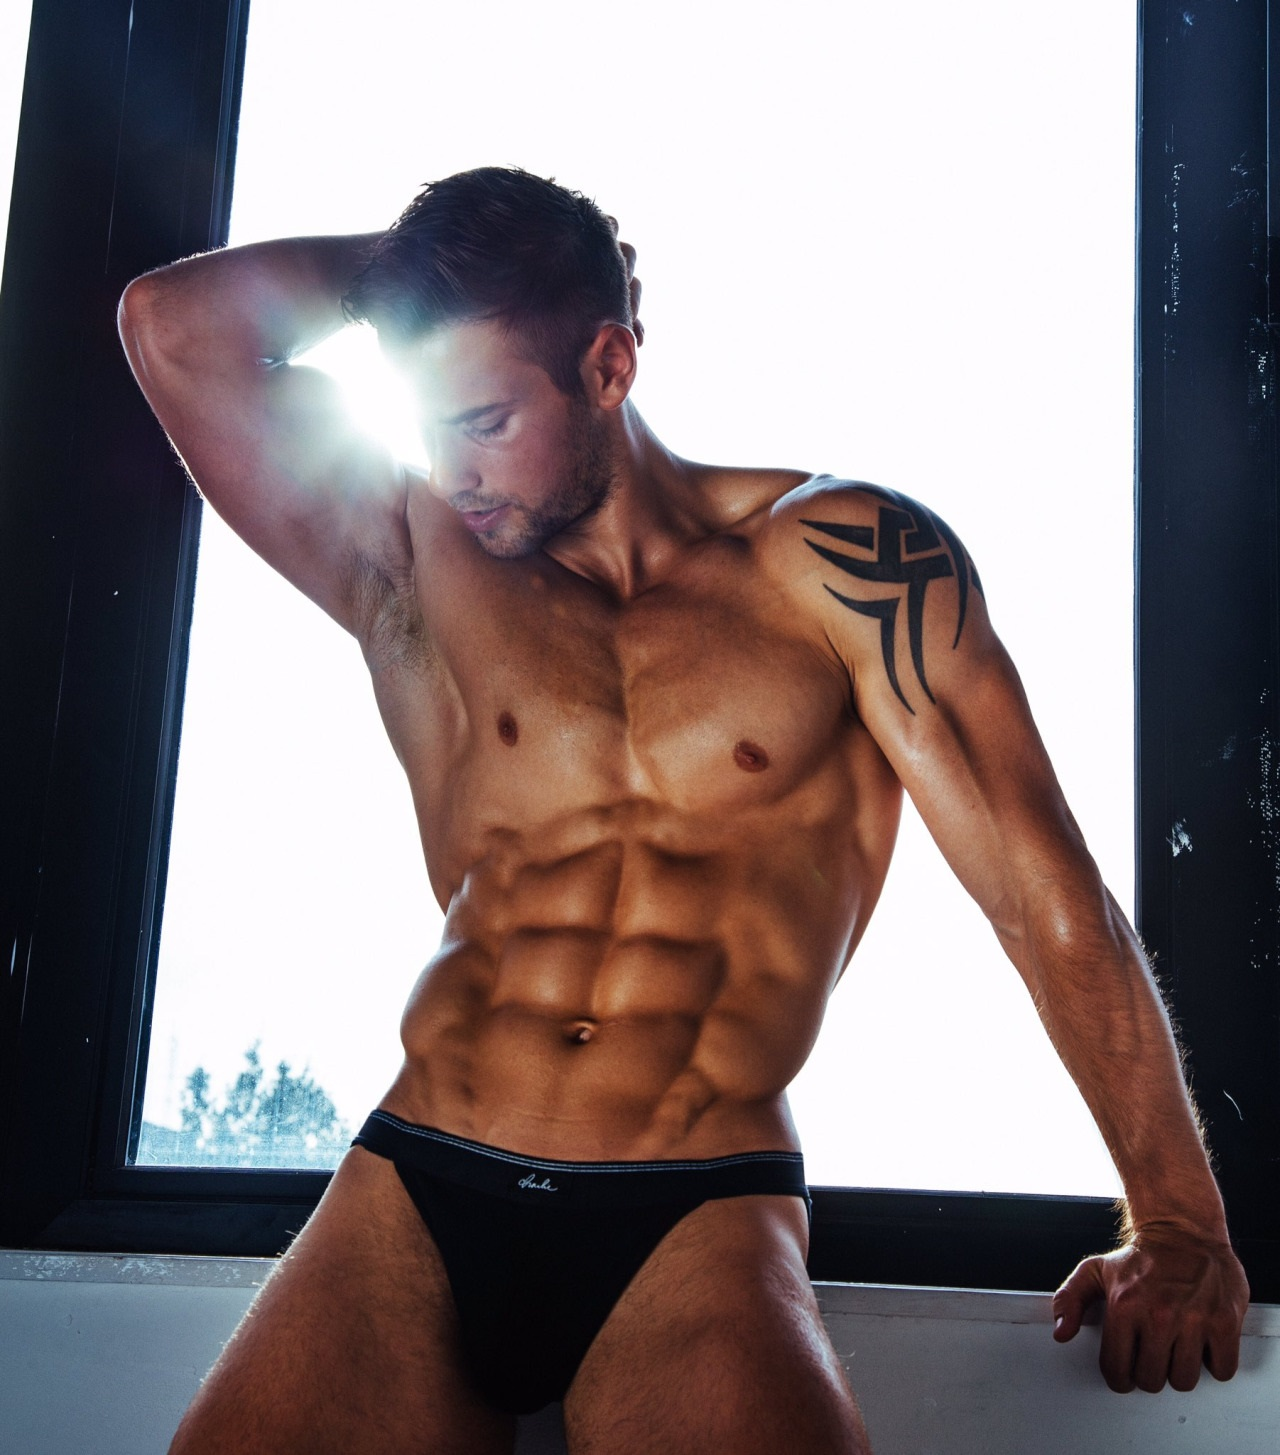 Alex Crockford X Joseph Sinclair